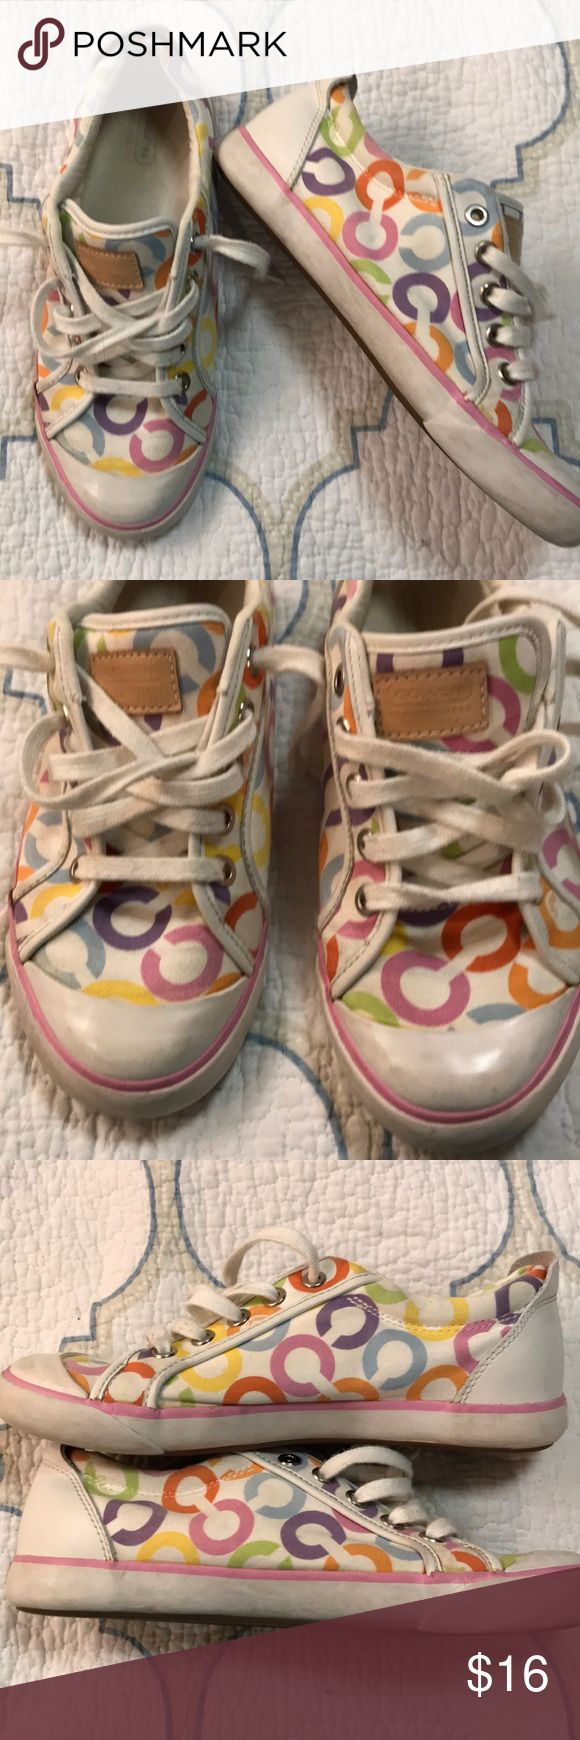 Coach Shoes These are a size 7 white coach shoes with multi color coach C's on them. They are a little dirty and could be cleaned up a little around the white sole part( shown in pics above) the left shoe has a part where it looks like some of the glue may have colored the shoe or could be a stain I can't really tell. (Shown in pic above) the right shoe has silver market on the heel. These could use to be washed. But the soles are in good condition and have so much more love to give!!! Coach…